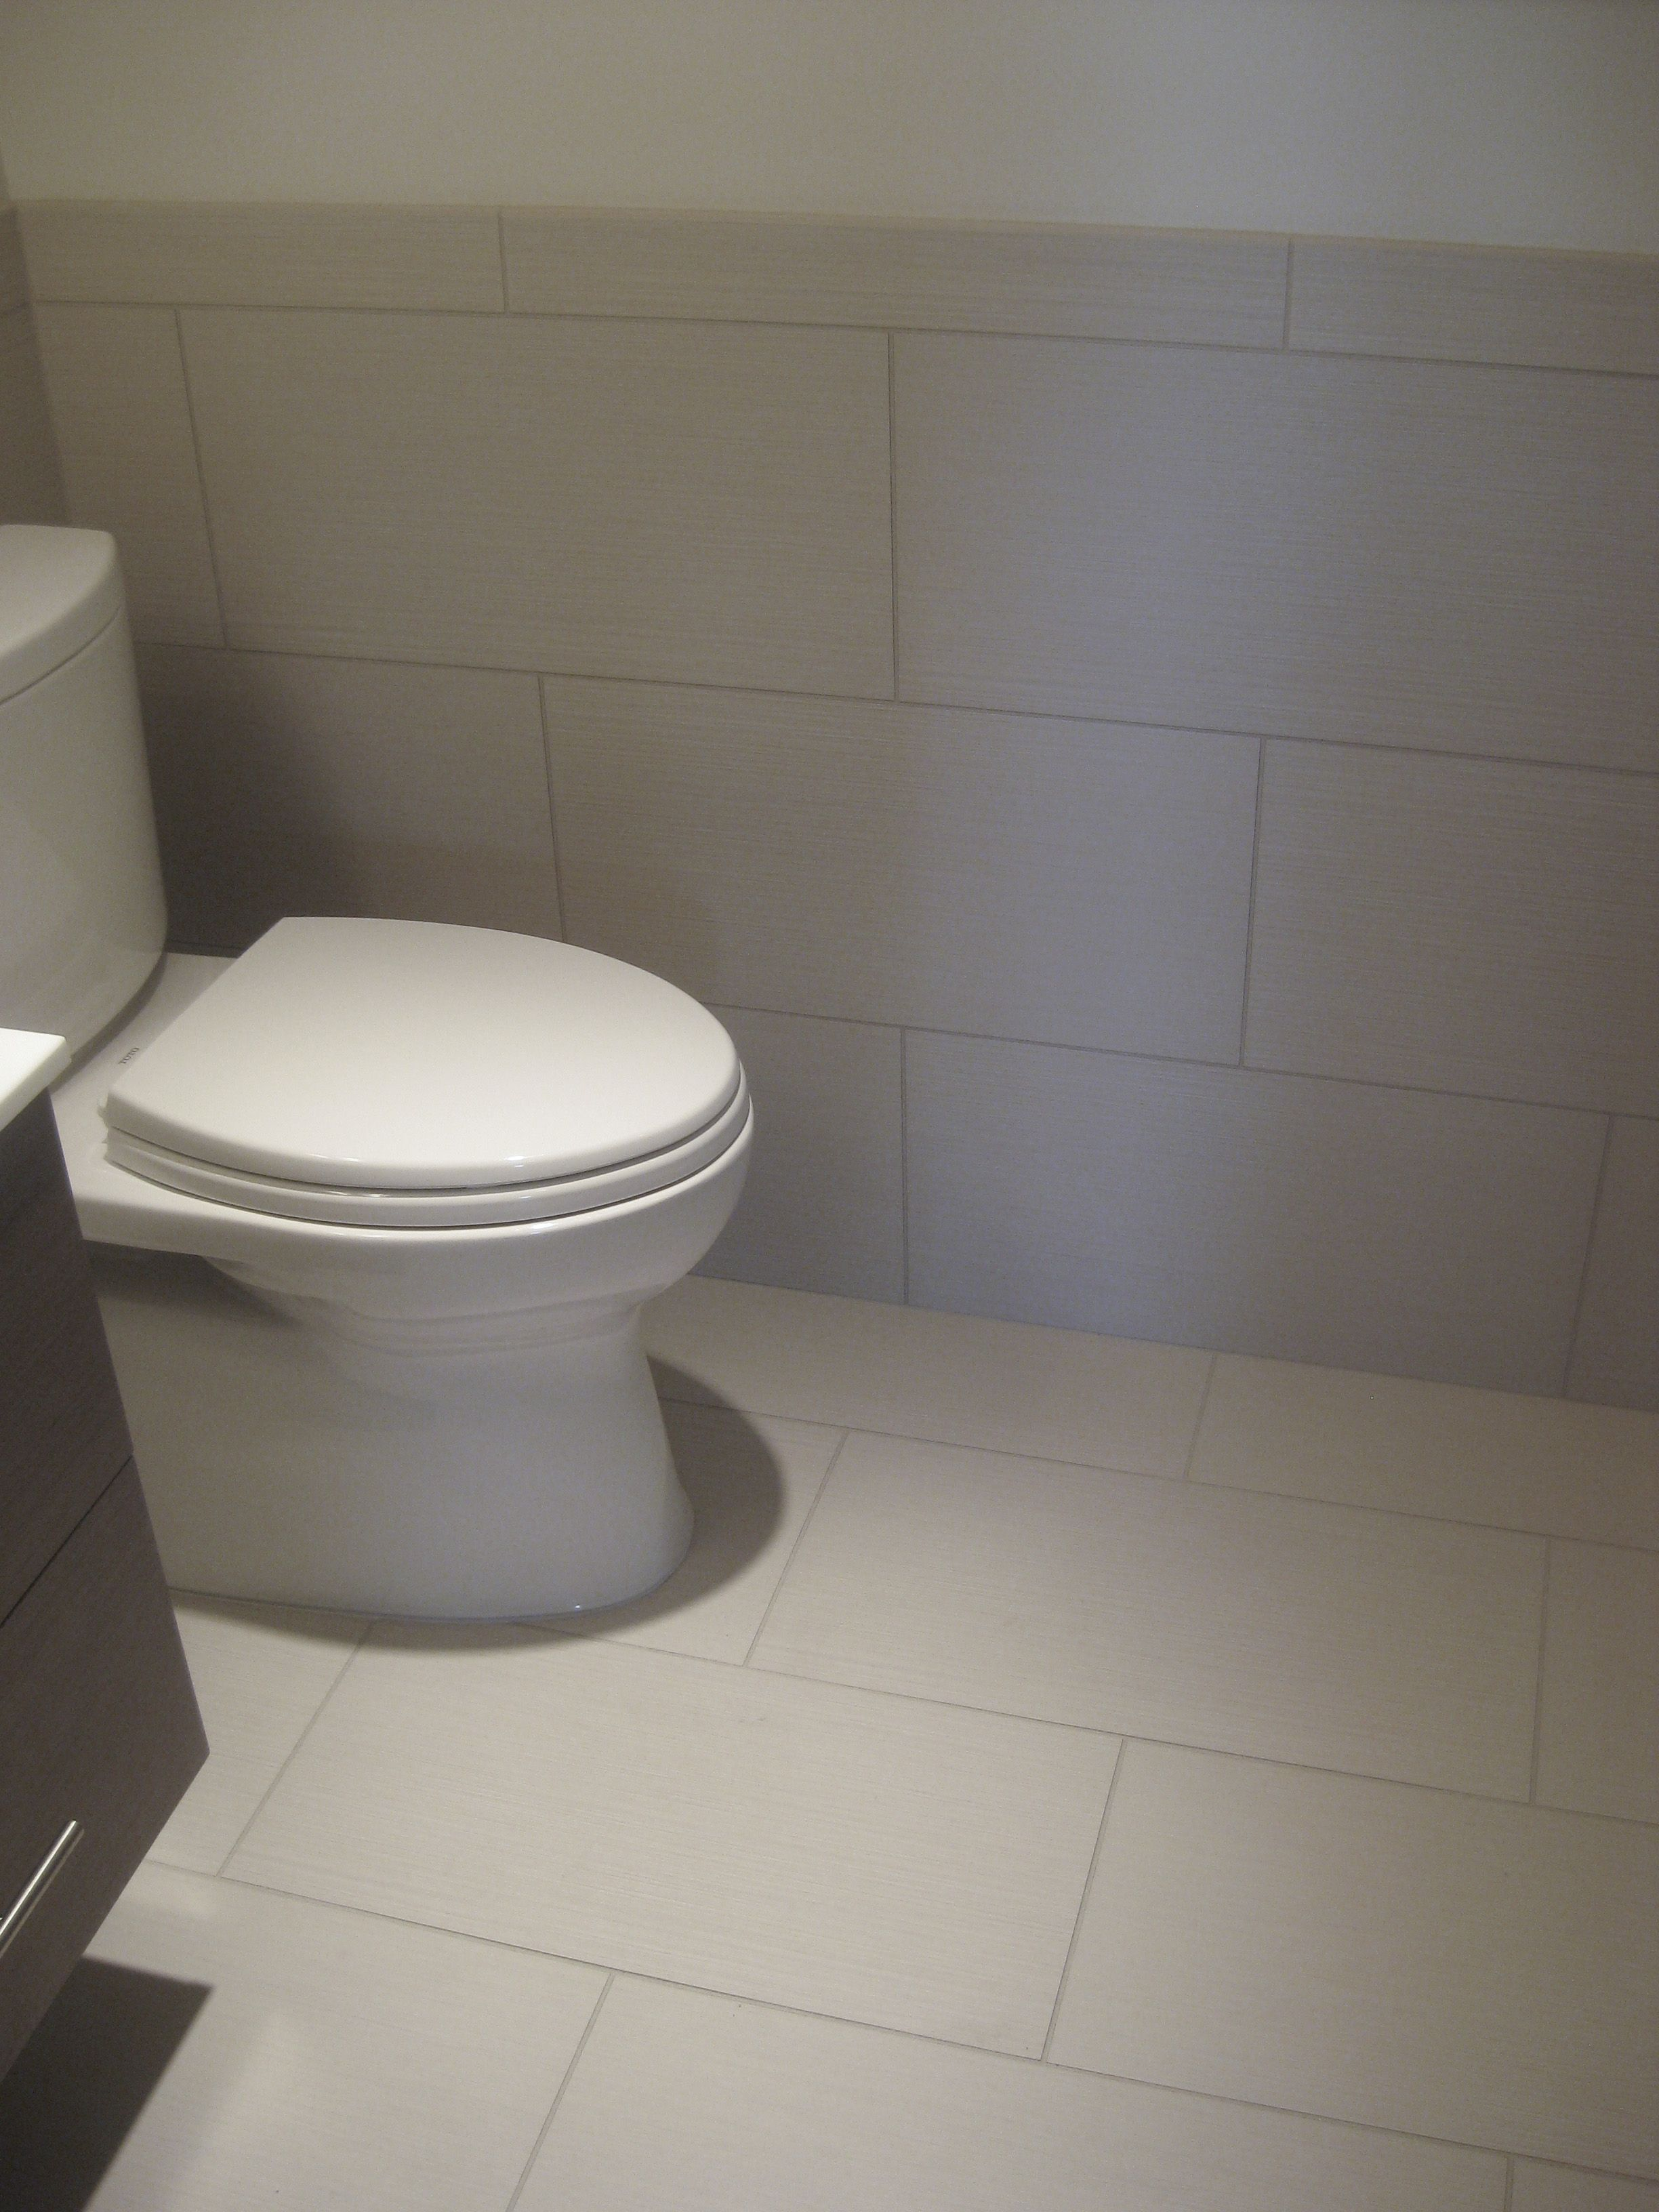 Large Tile In A Small Bathroom Yes Br Bath 2 1 Jpg 2448 3264